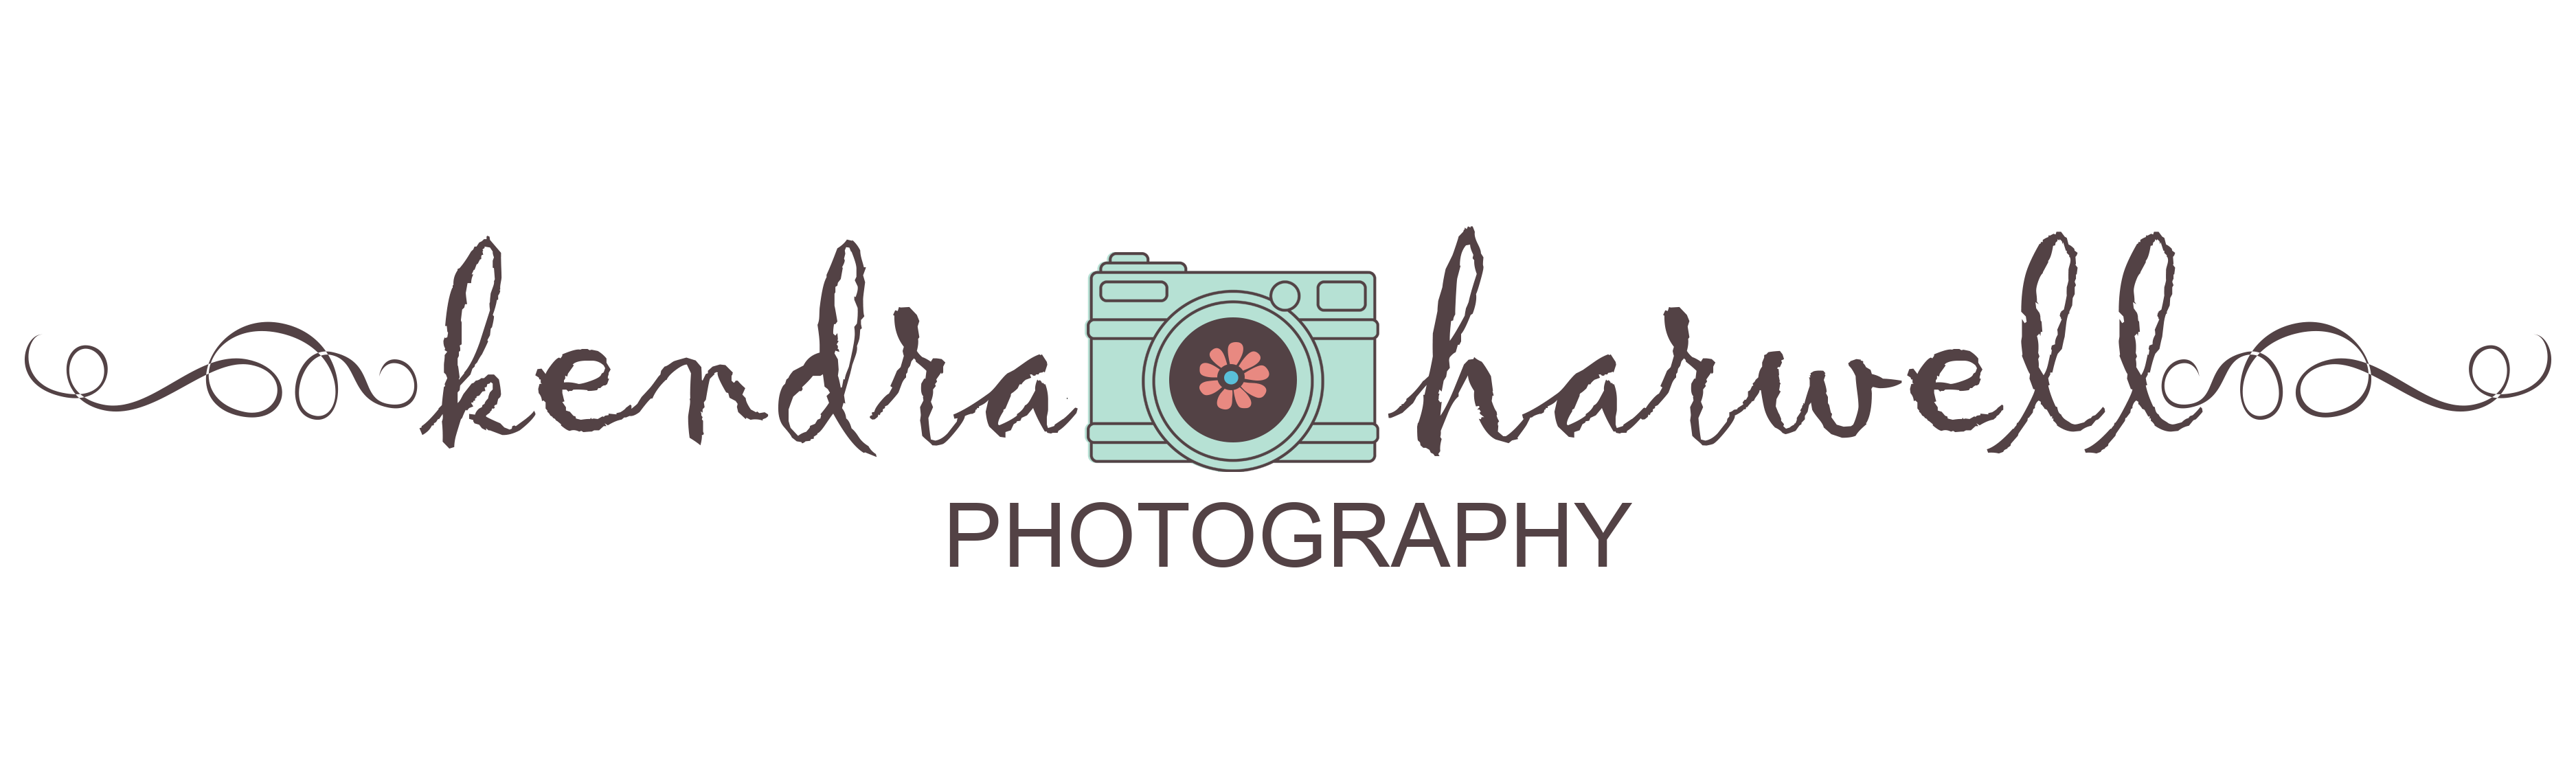 photography camera logo png #7144